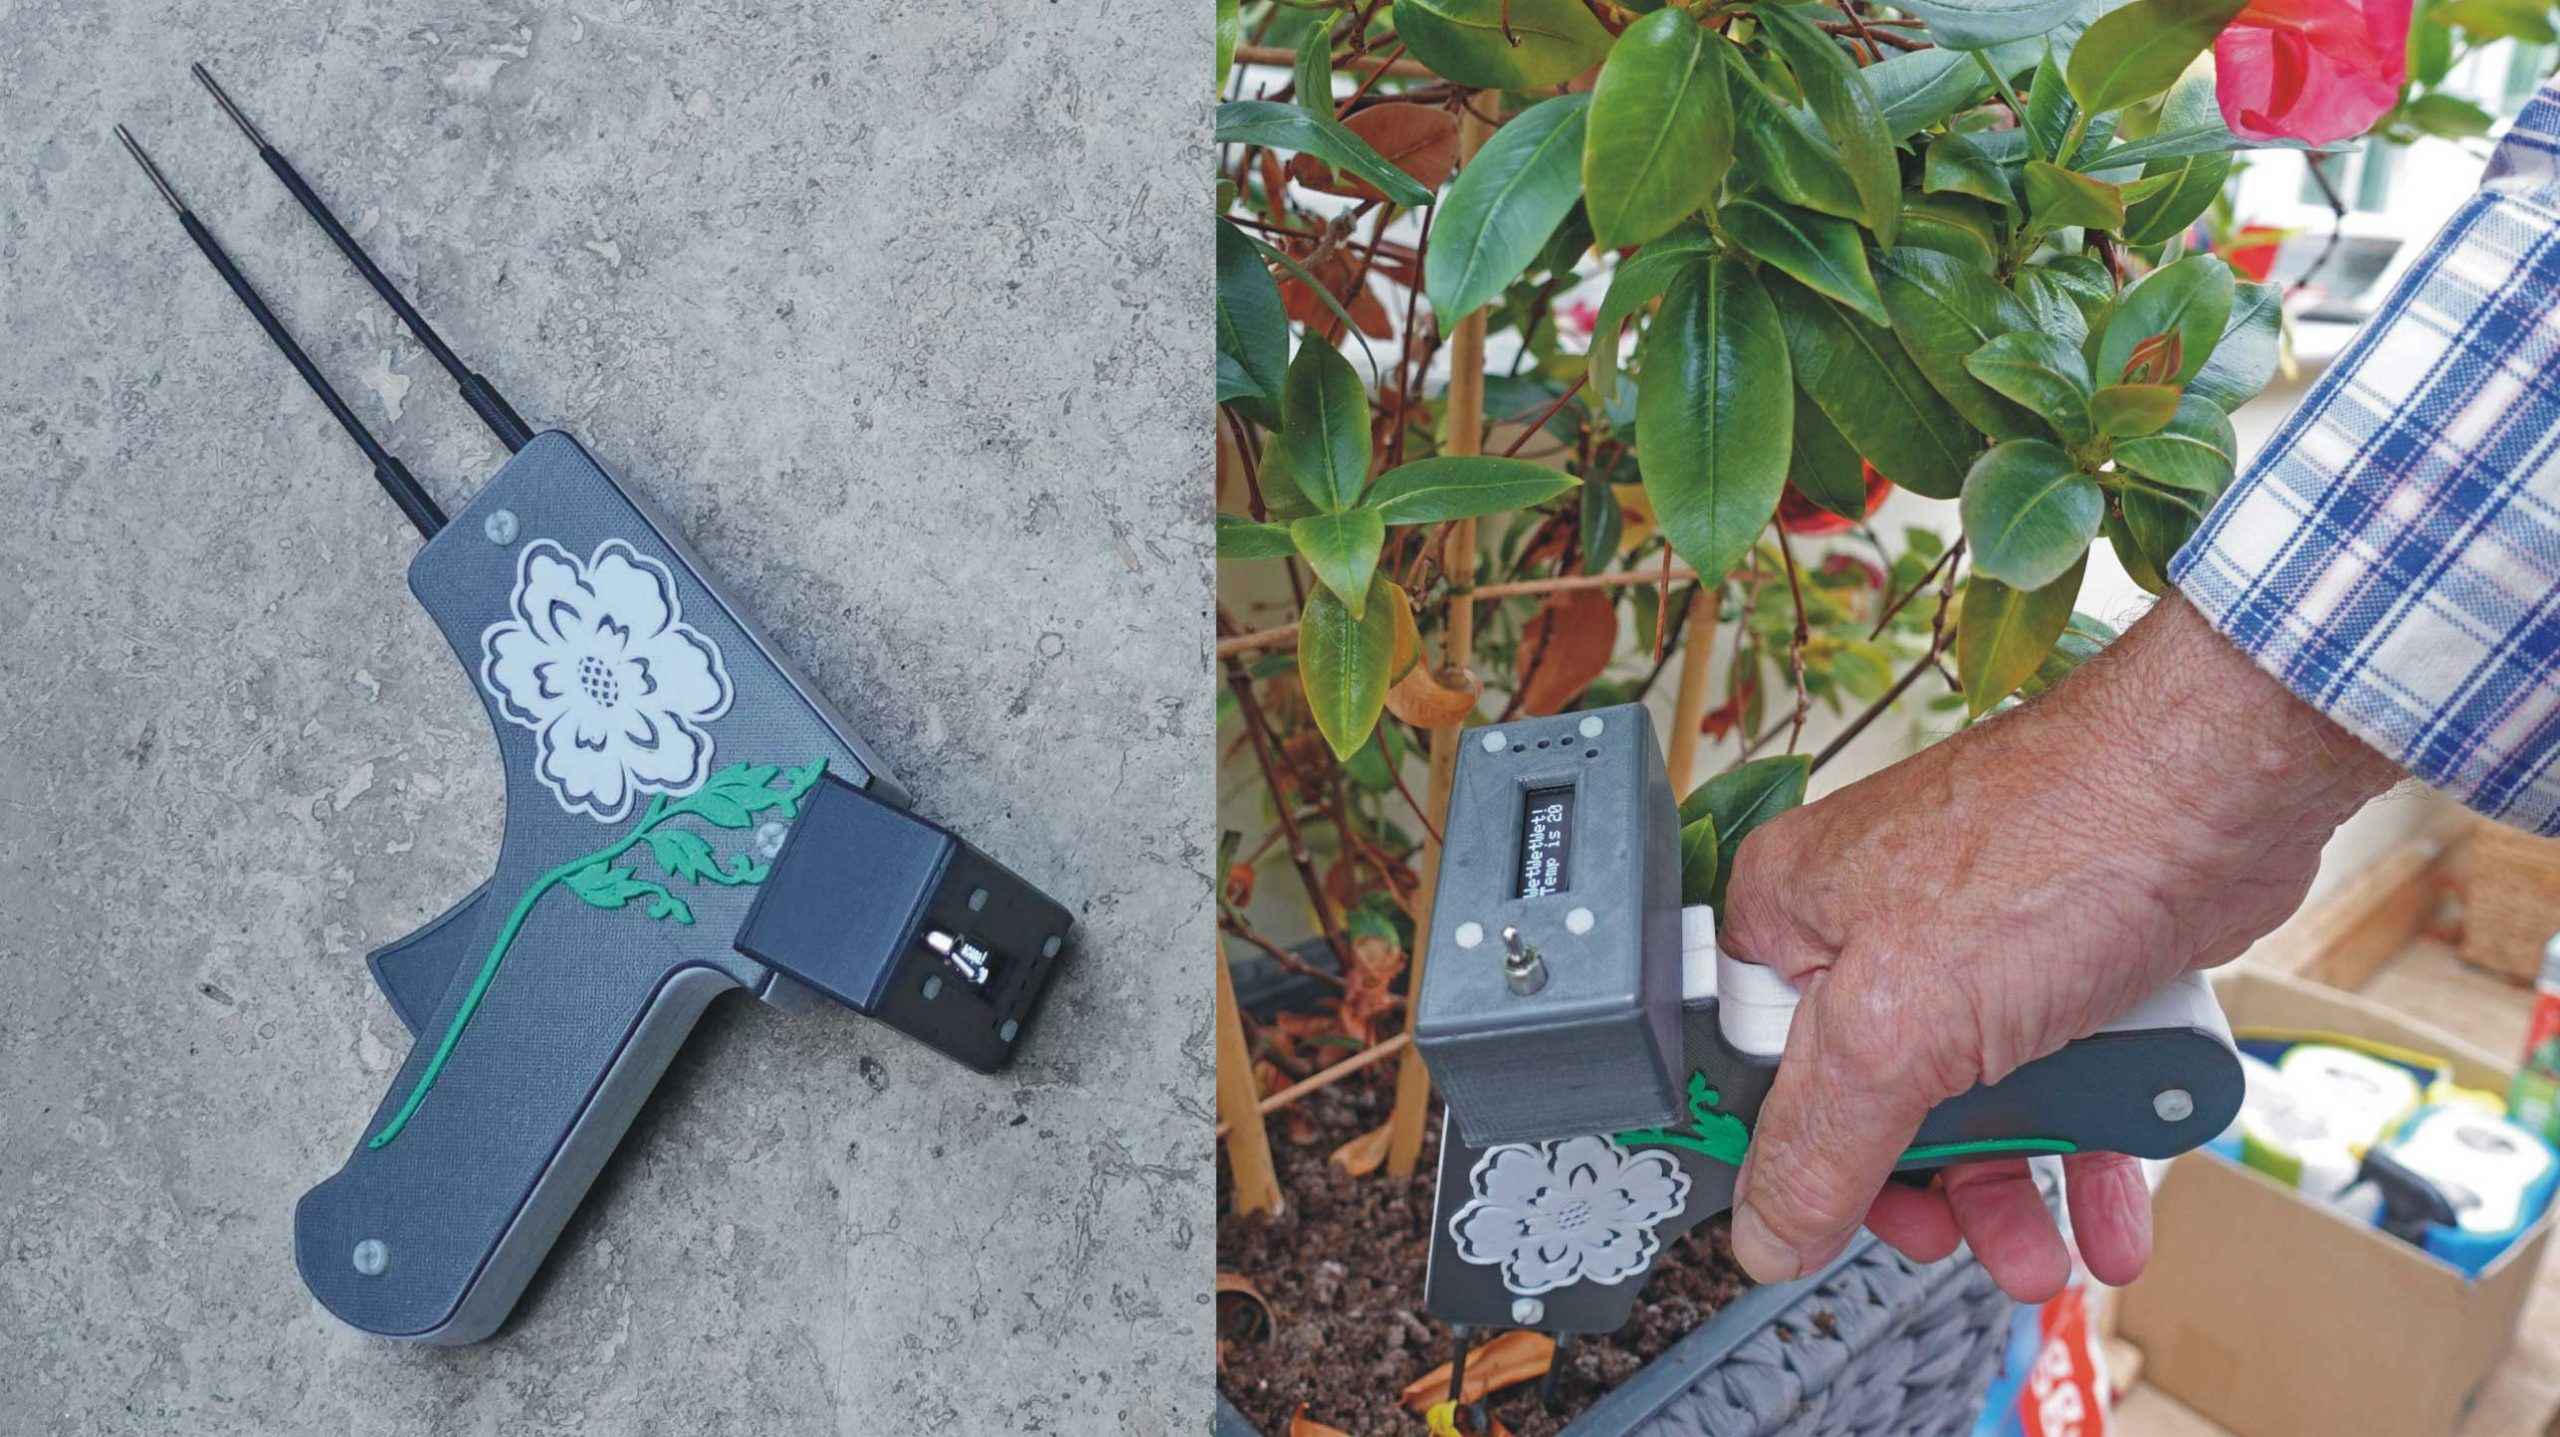 3D-printed soil dampness tester